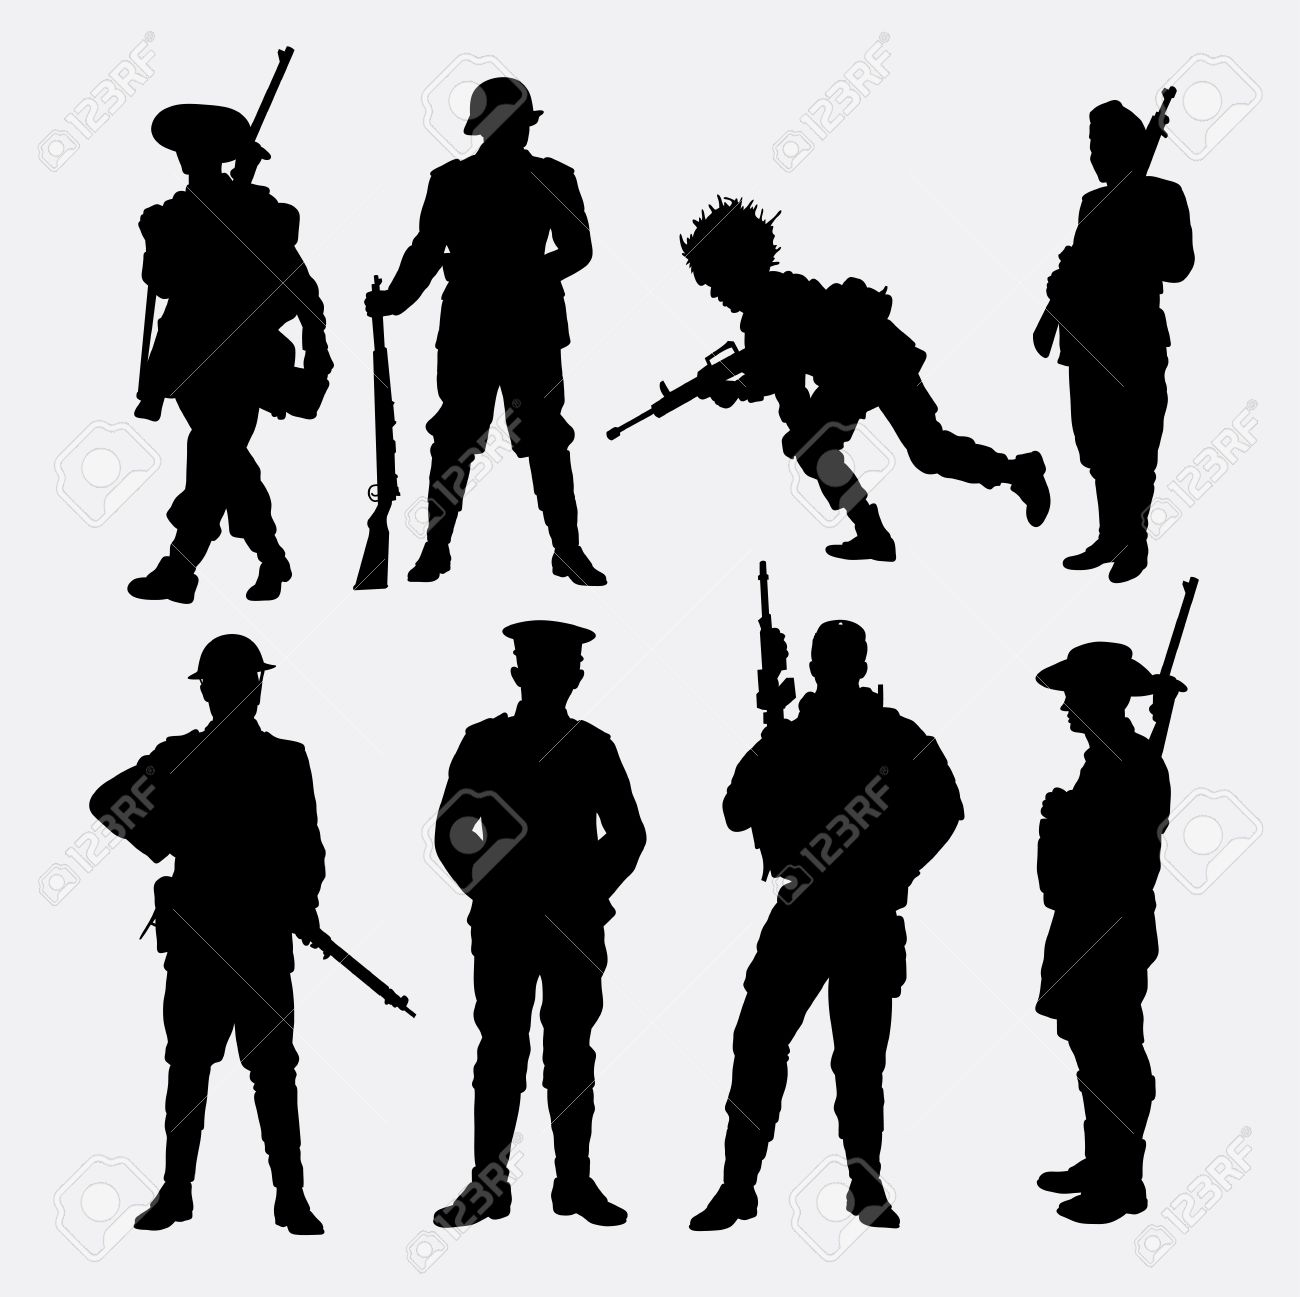 Army military soldier police silhouette good use for symbol mascot